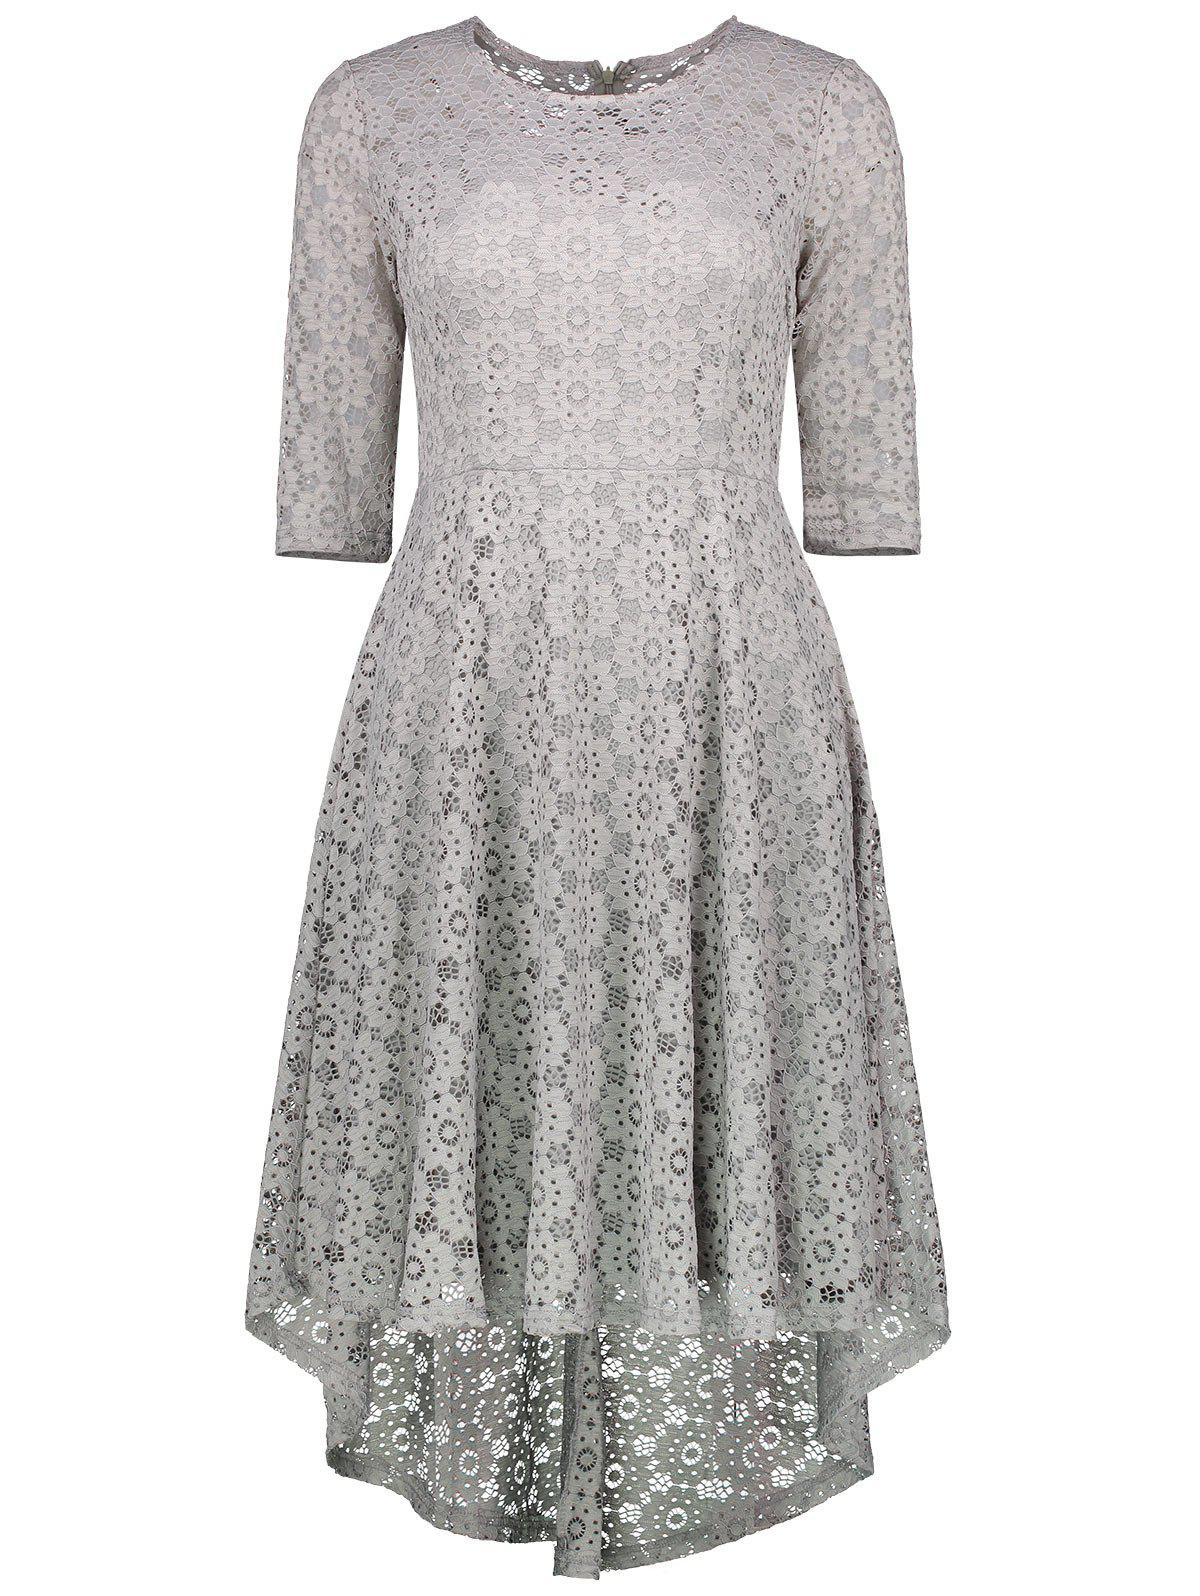 Lace Crochet High Low Midi A Line Dress - GRAY L